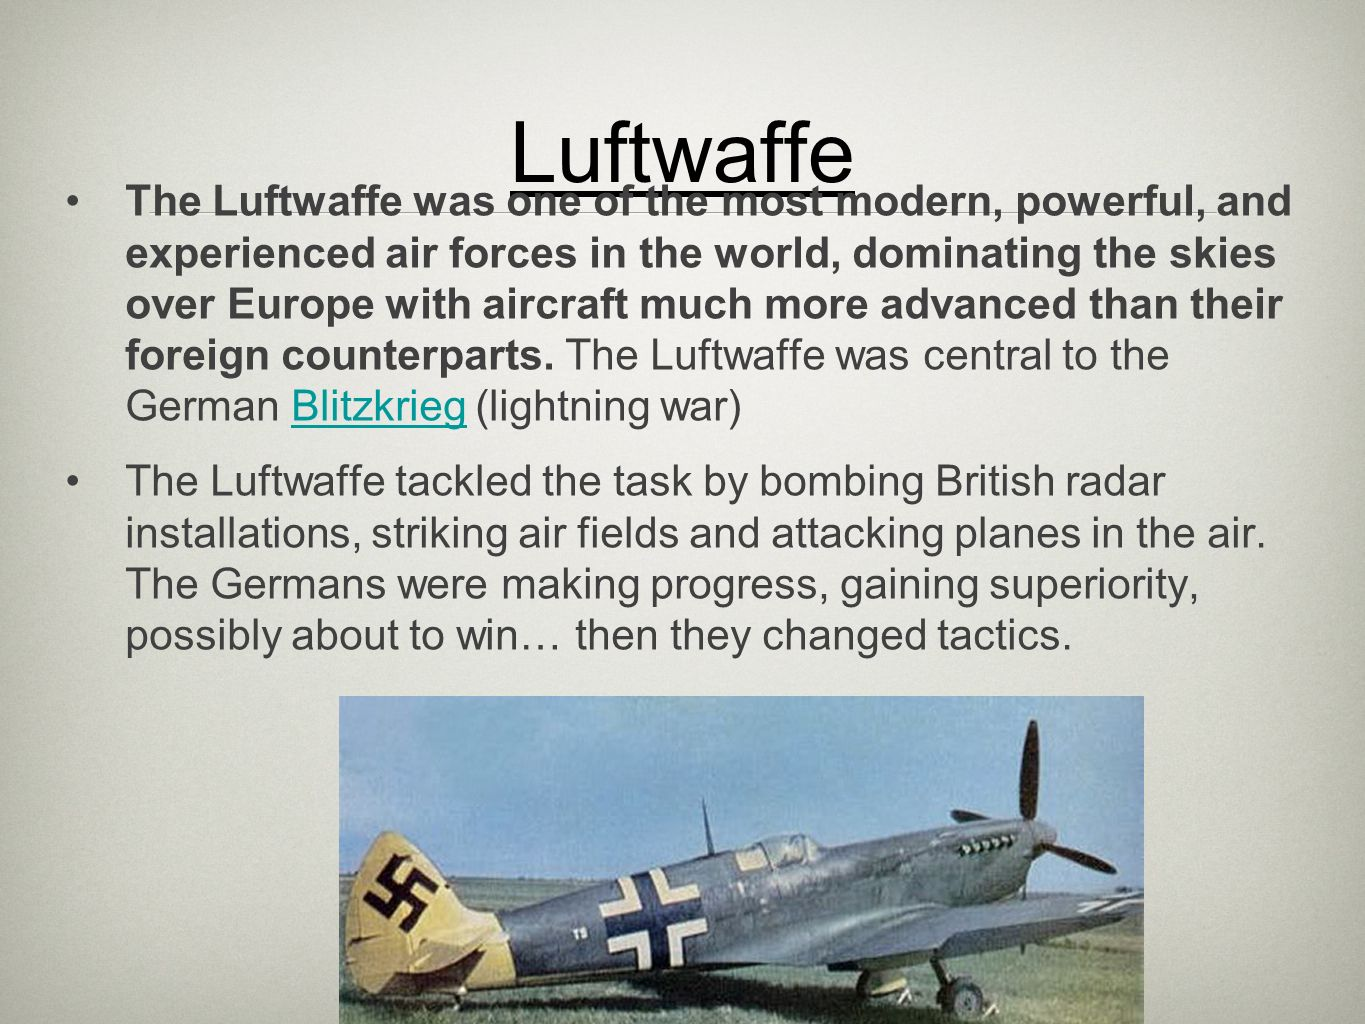 a report on the battle of britain in 1940 The battle of britain was a continued attack by the german air force on great britain during the summer and autumn of 1940 the first objective of the campaign was to gain control of the air space above britain from the royal air.